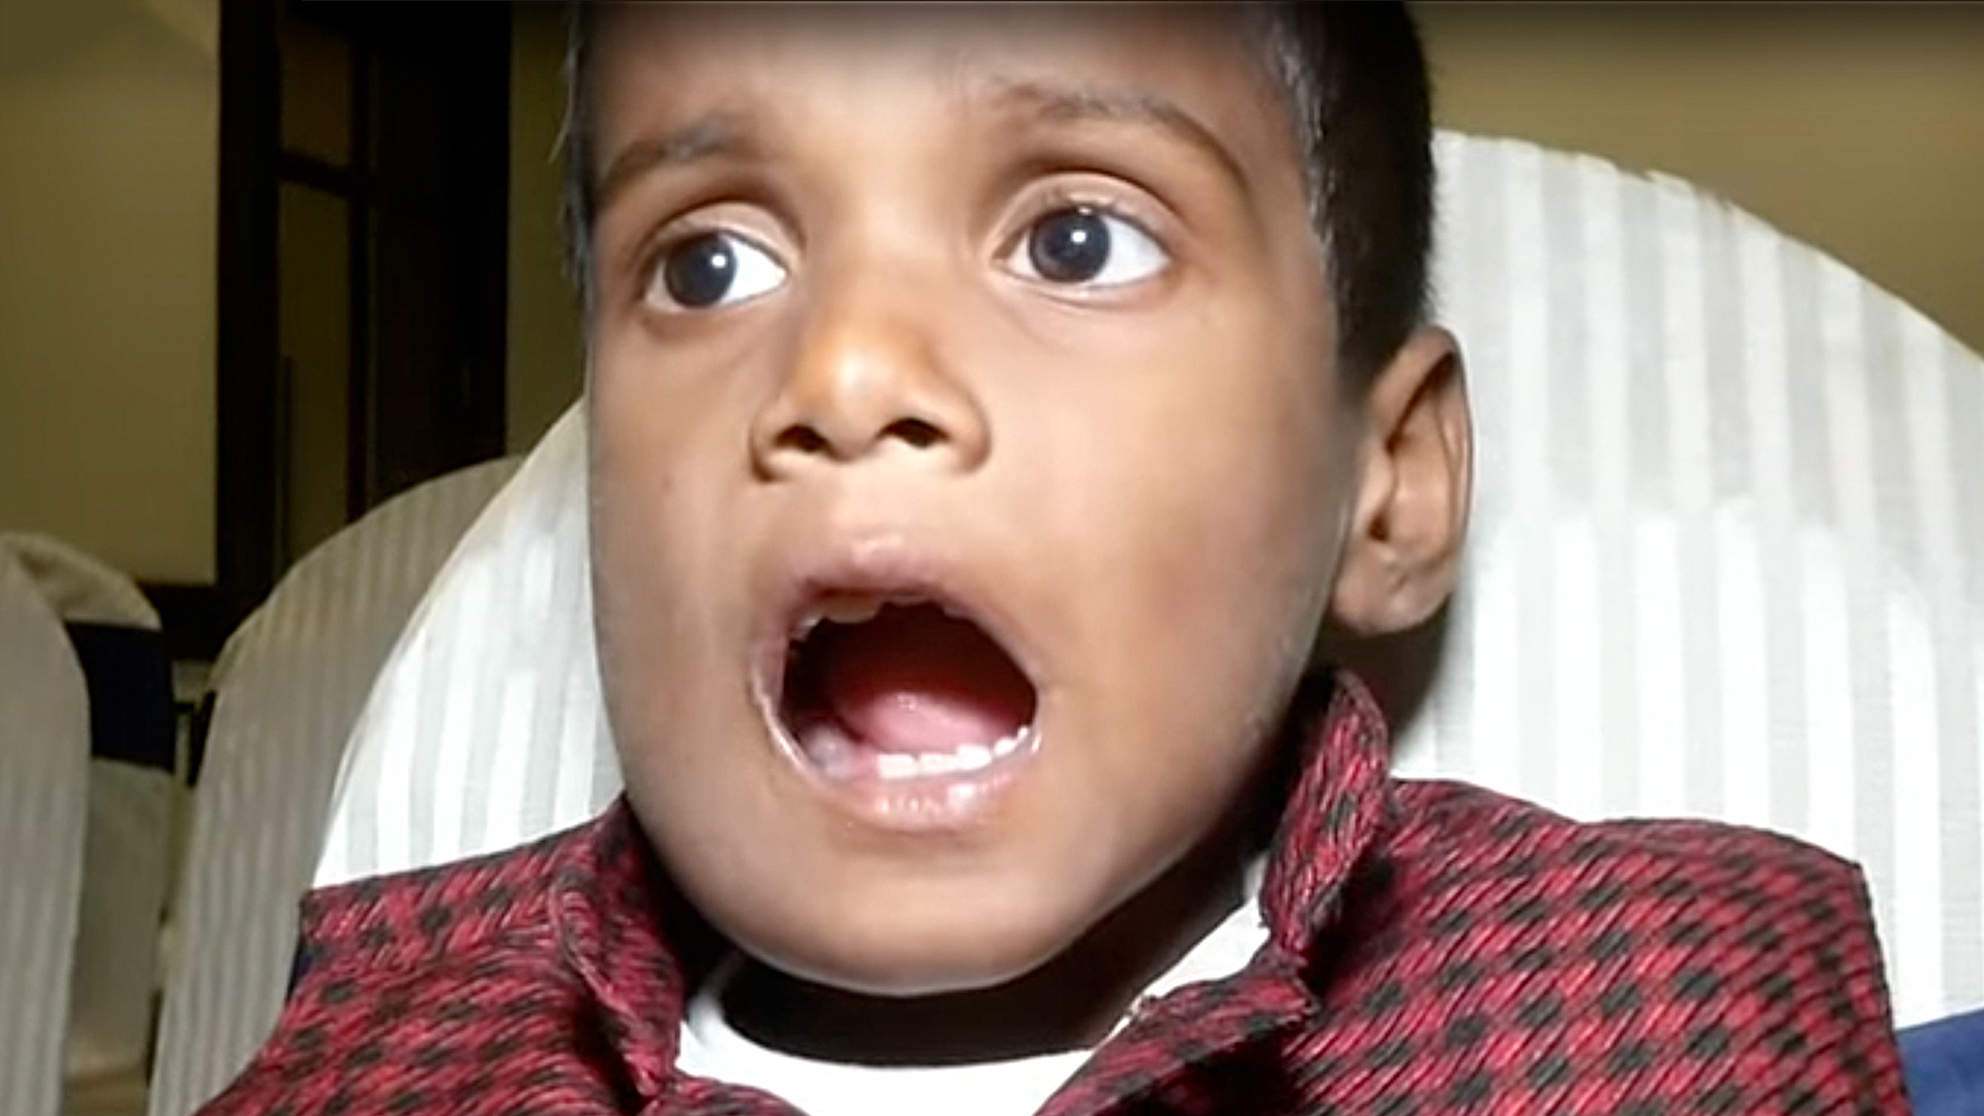 Little Boy Has Over 500 Teeth Removed from His Mouth After He Complained of Jaw Pain and Swelling